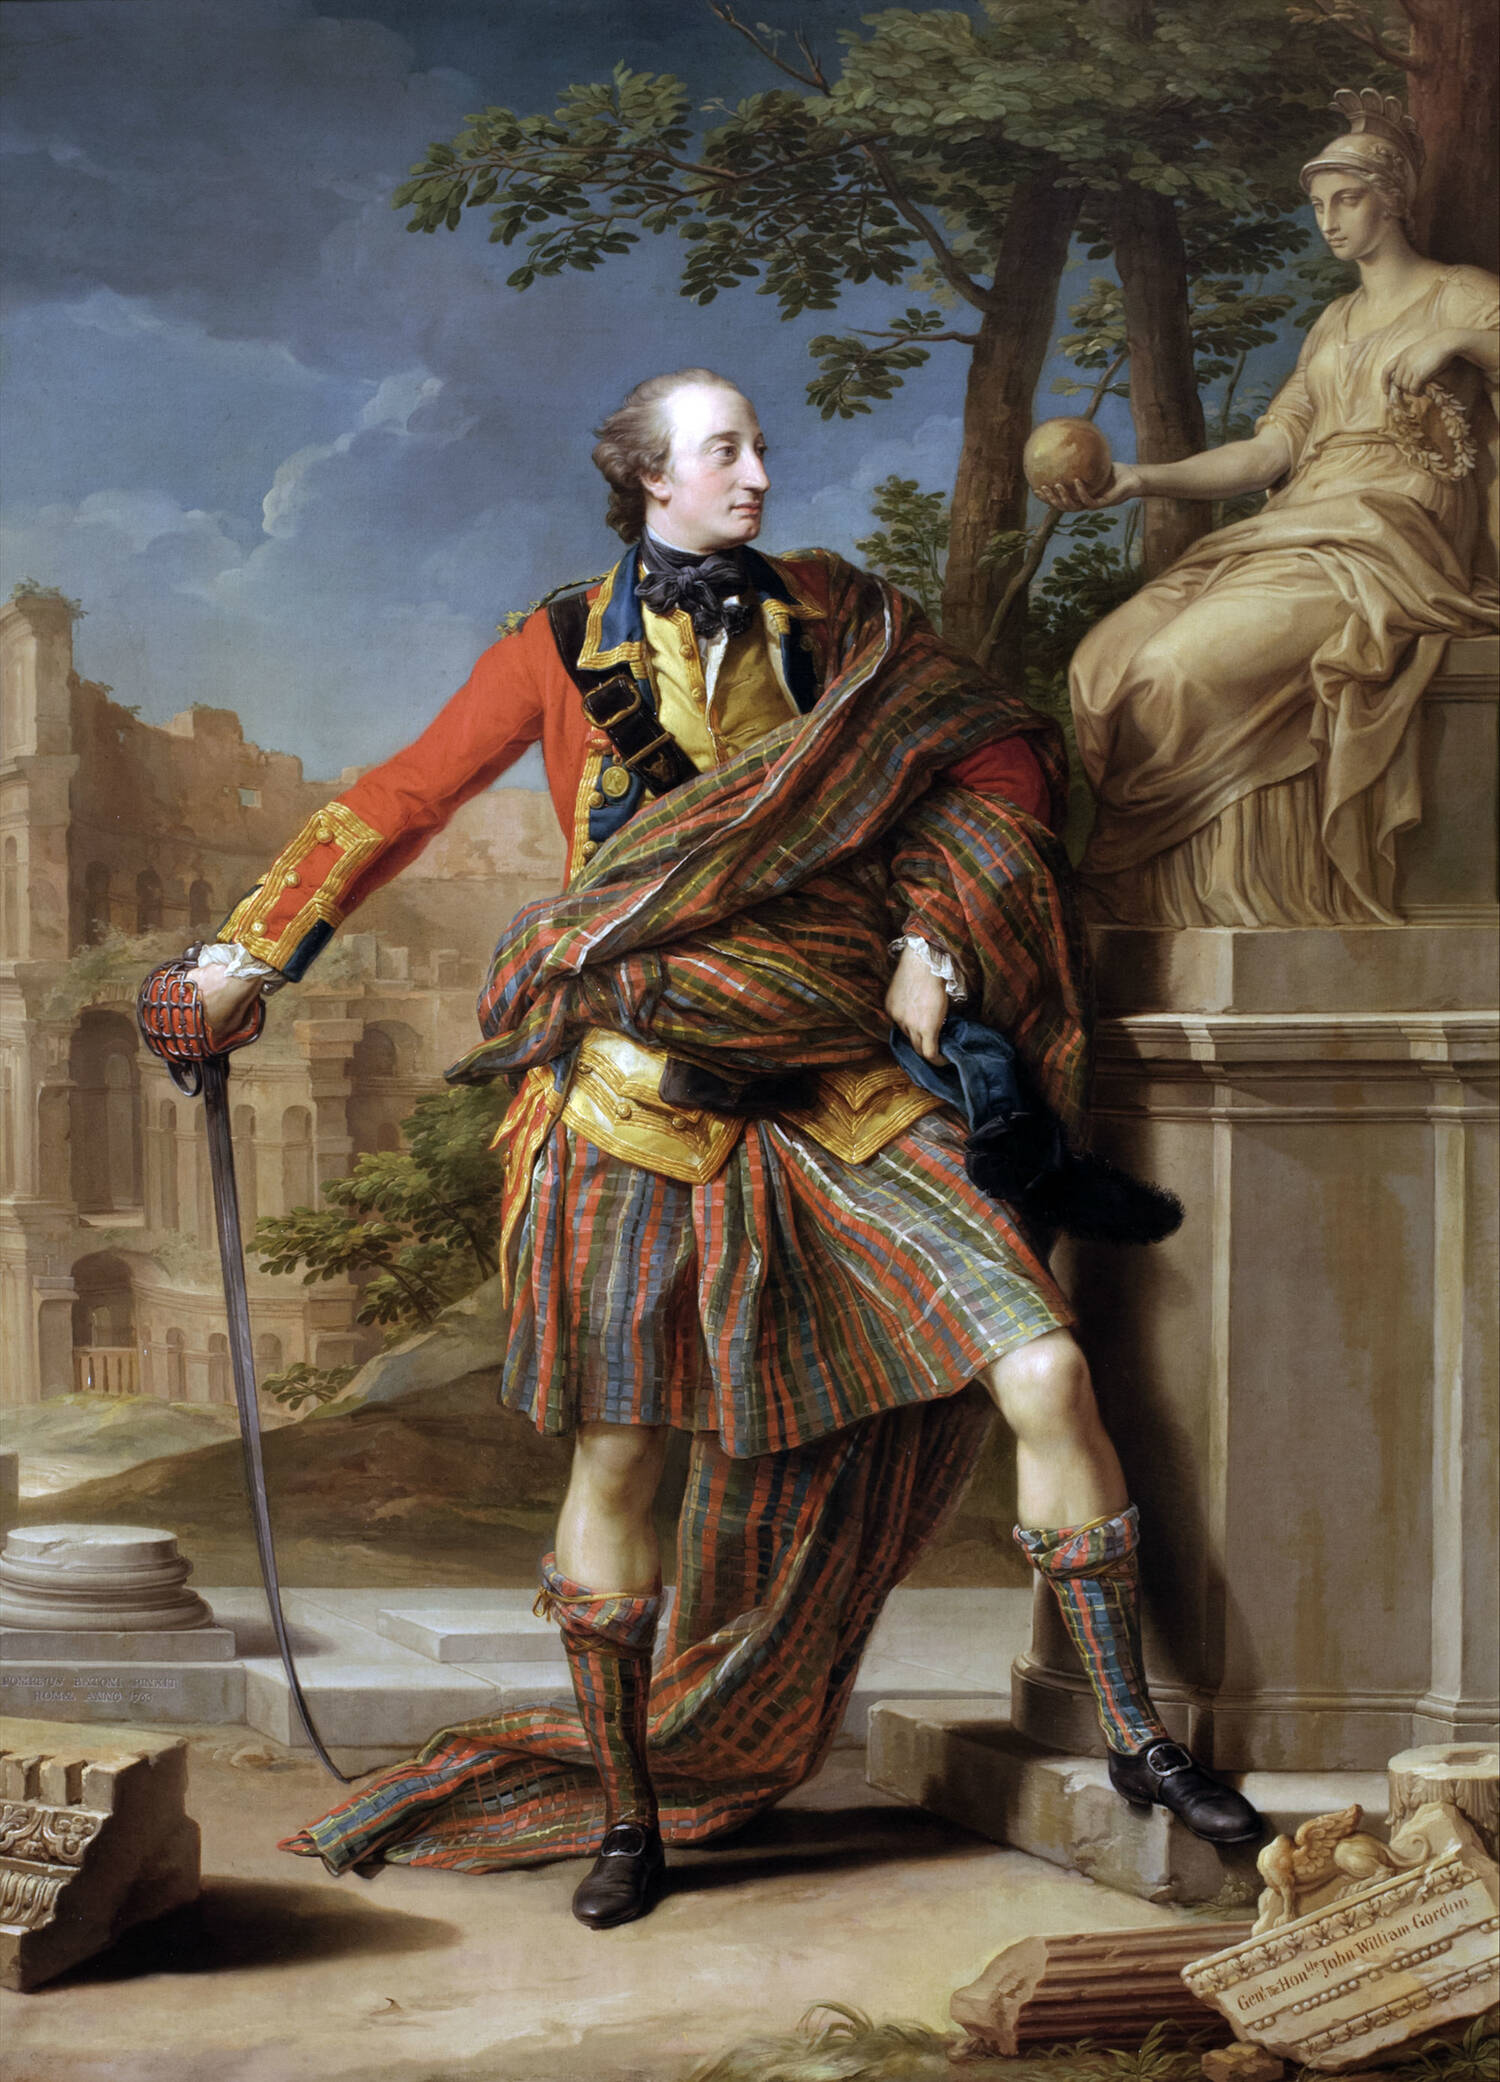 The portrait of Colonel William Gordon, painted by Pompeo Batoni in 1766. The tartan-clad Gordon stands with one hand on his hip, the other resting on his sword. There is a classical background.